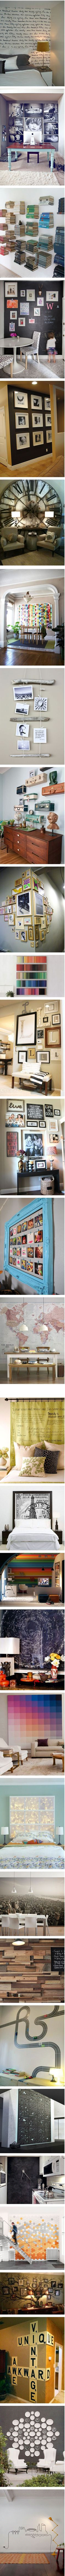 #creative #stylish #wall #decor #ideas #decals #murals